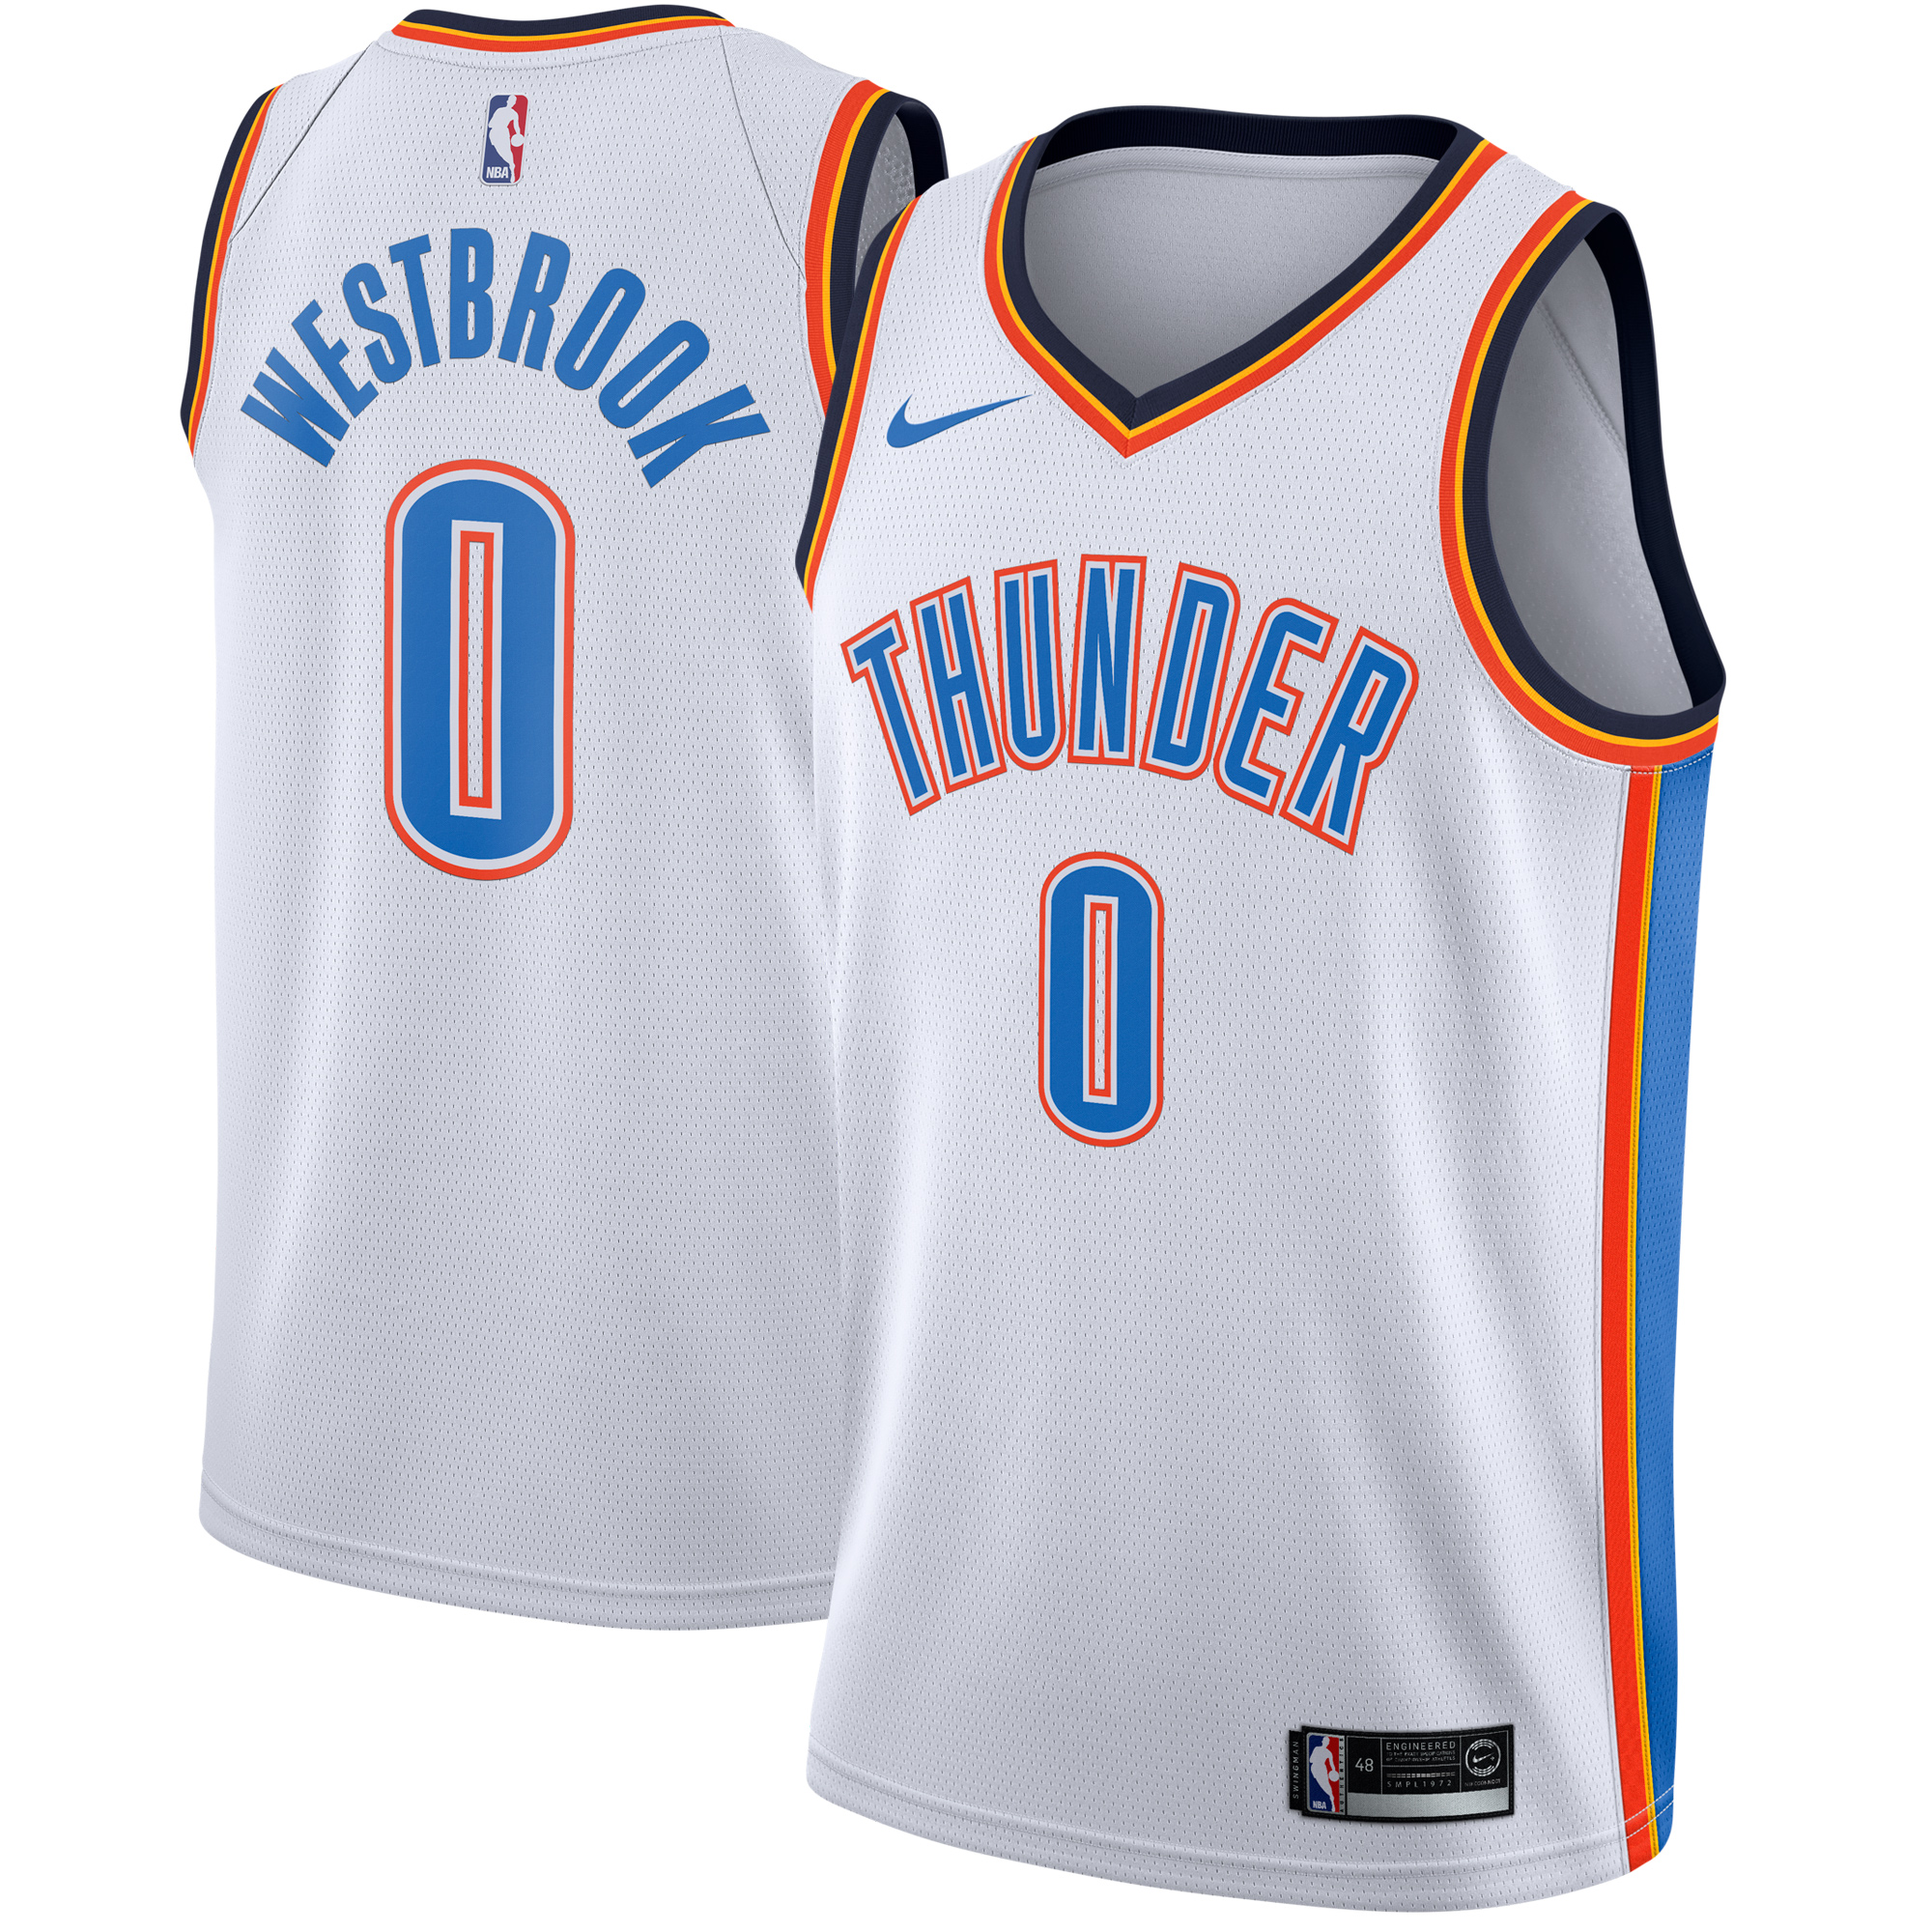 Russell Westbrook Oklahoma City Thunder Nike Swingman Jersey White - Association Edition